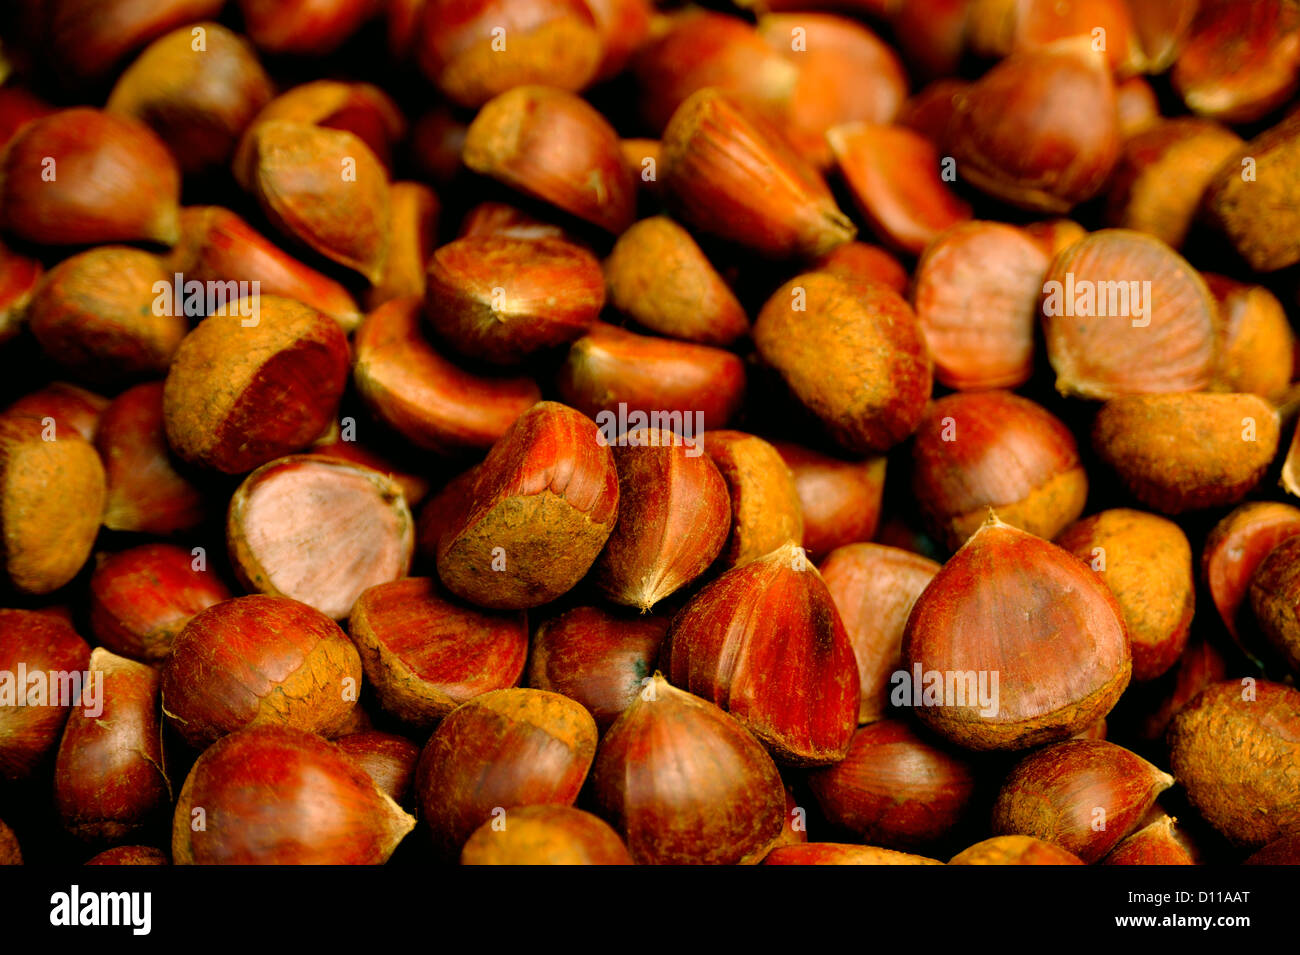 CHESTNUTS - Stock Image